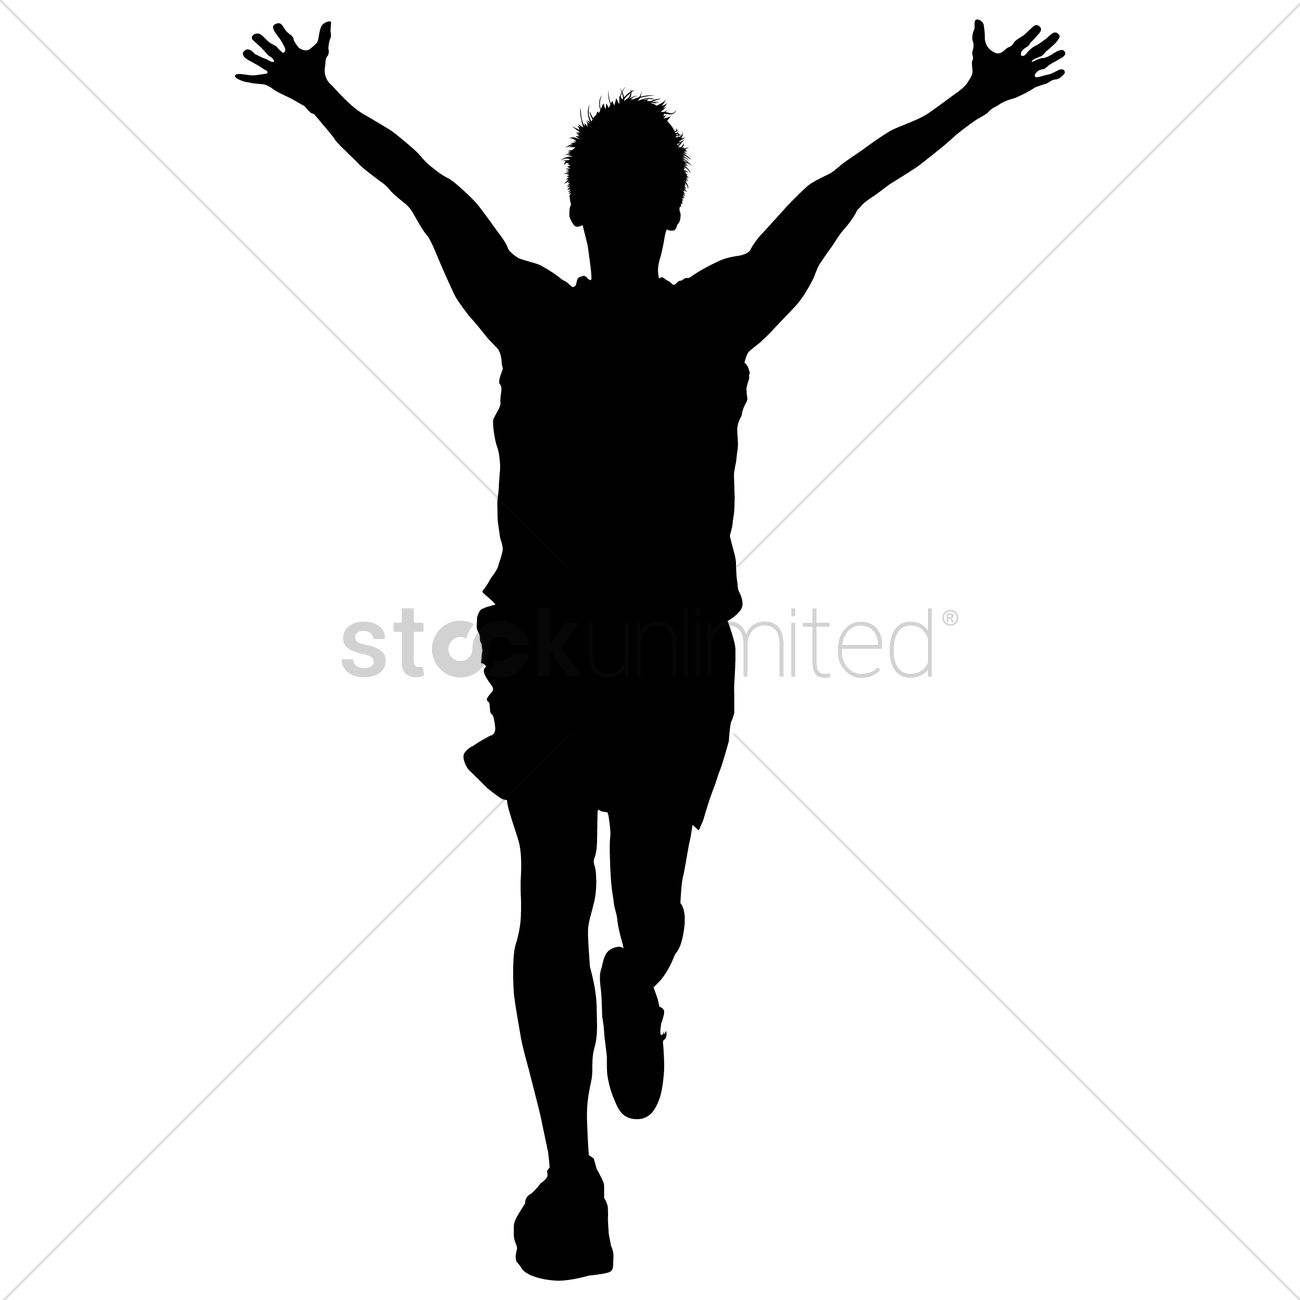 1300x1300 Silhouette Of A Man As A Winner Vector Image